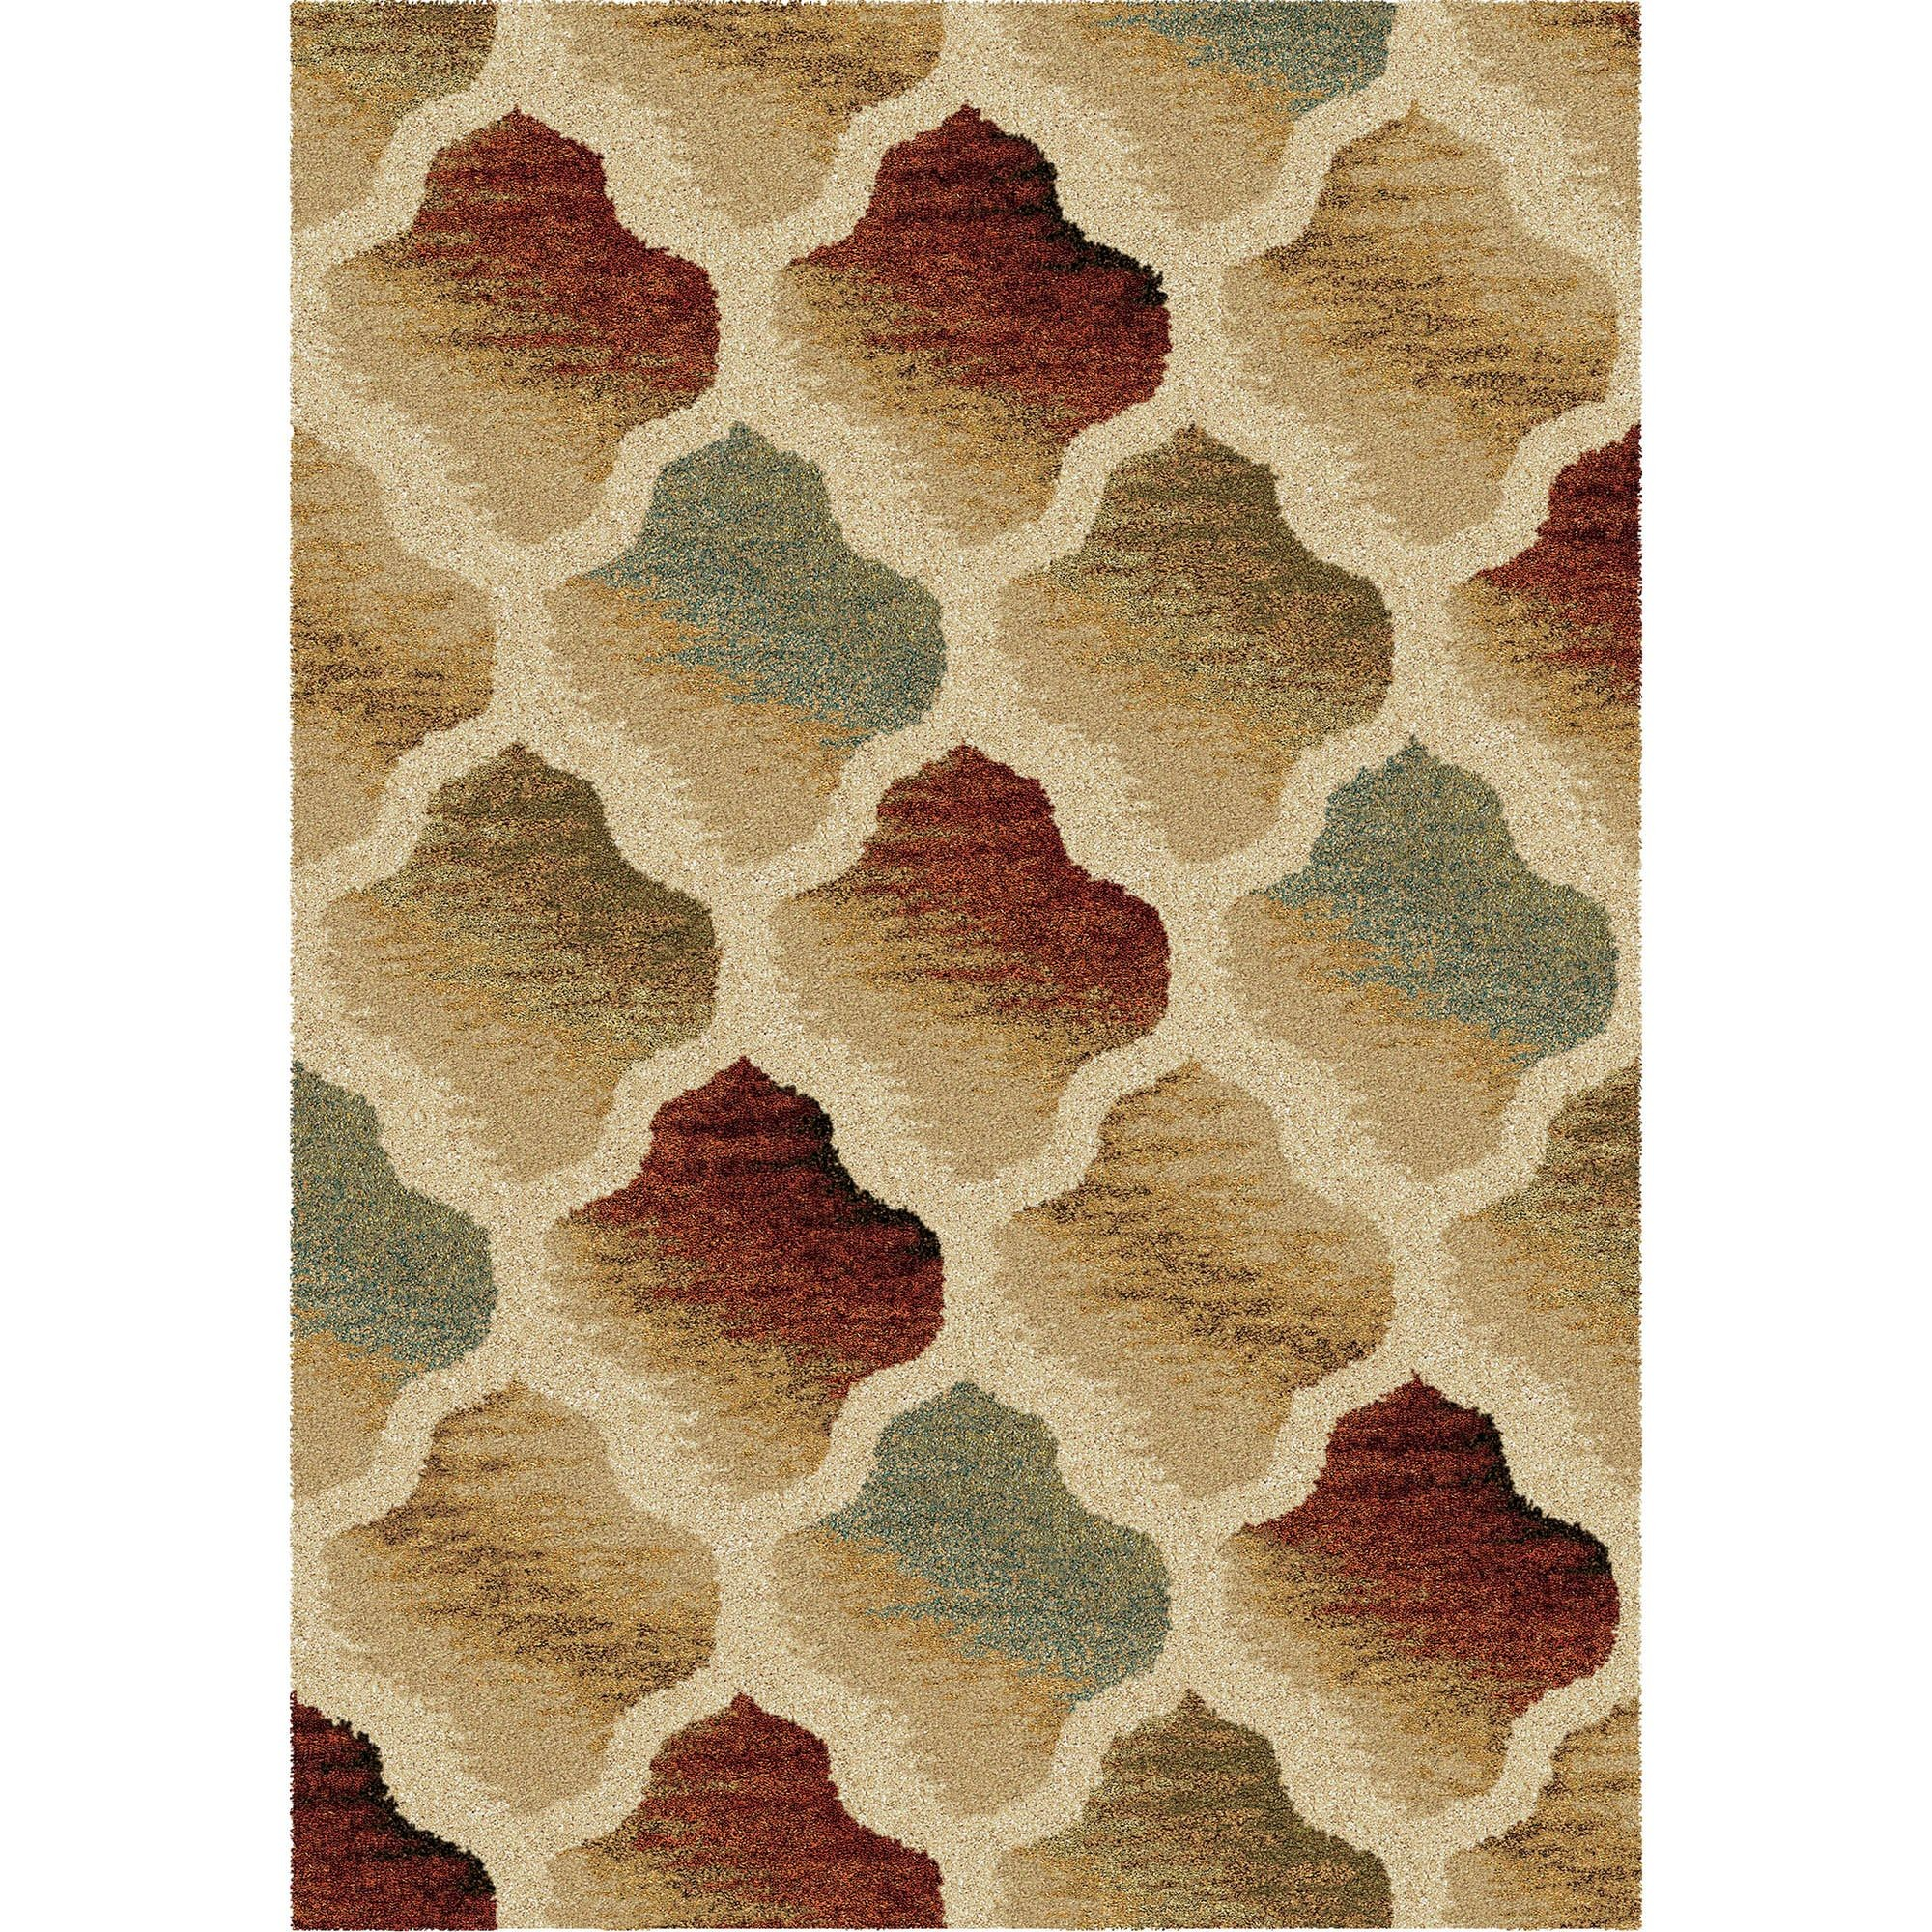 Desert Mirage Multi Large Rug From Orian 3602 8x11